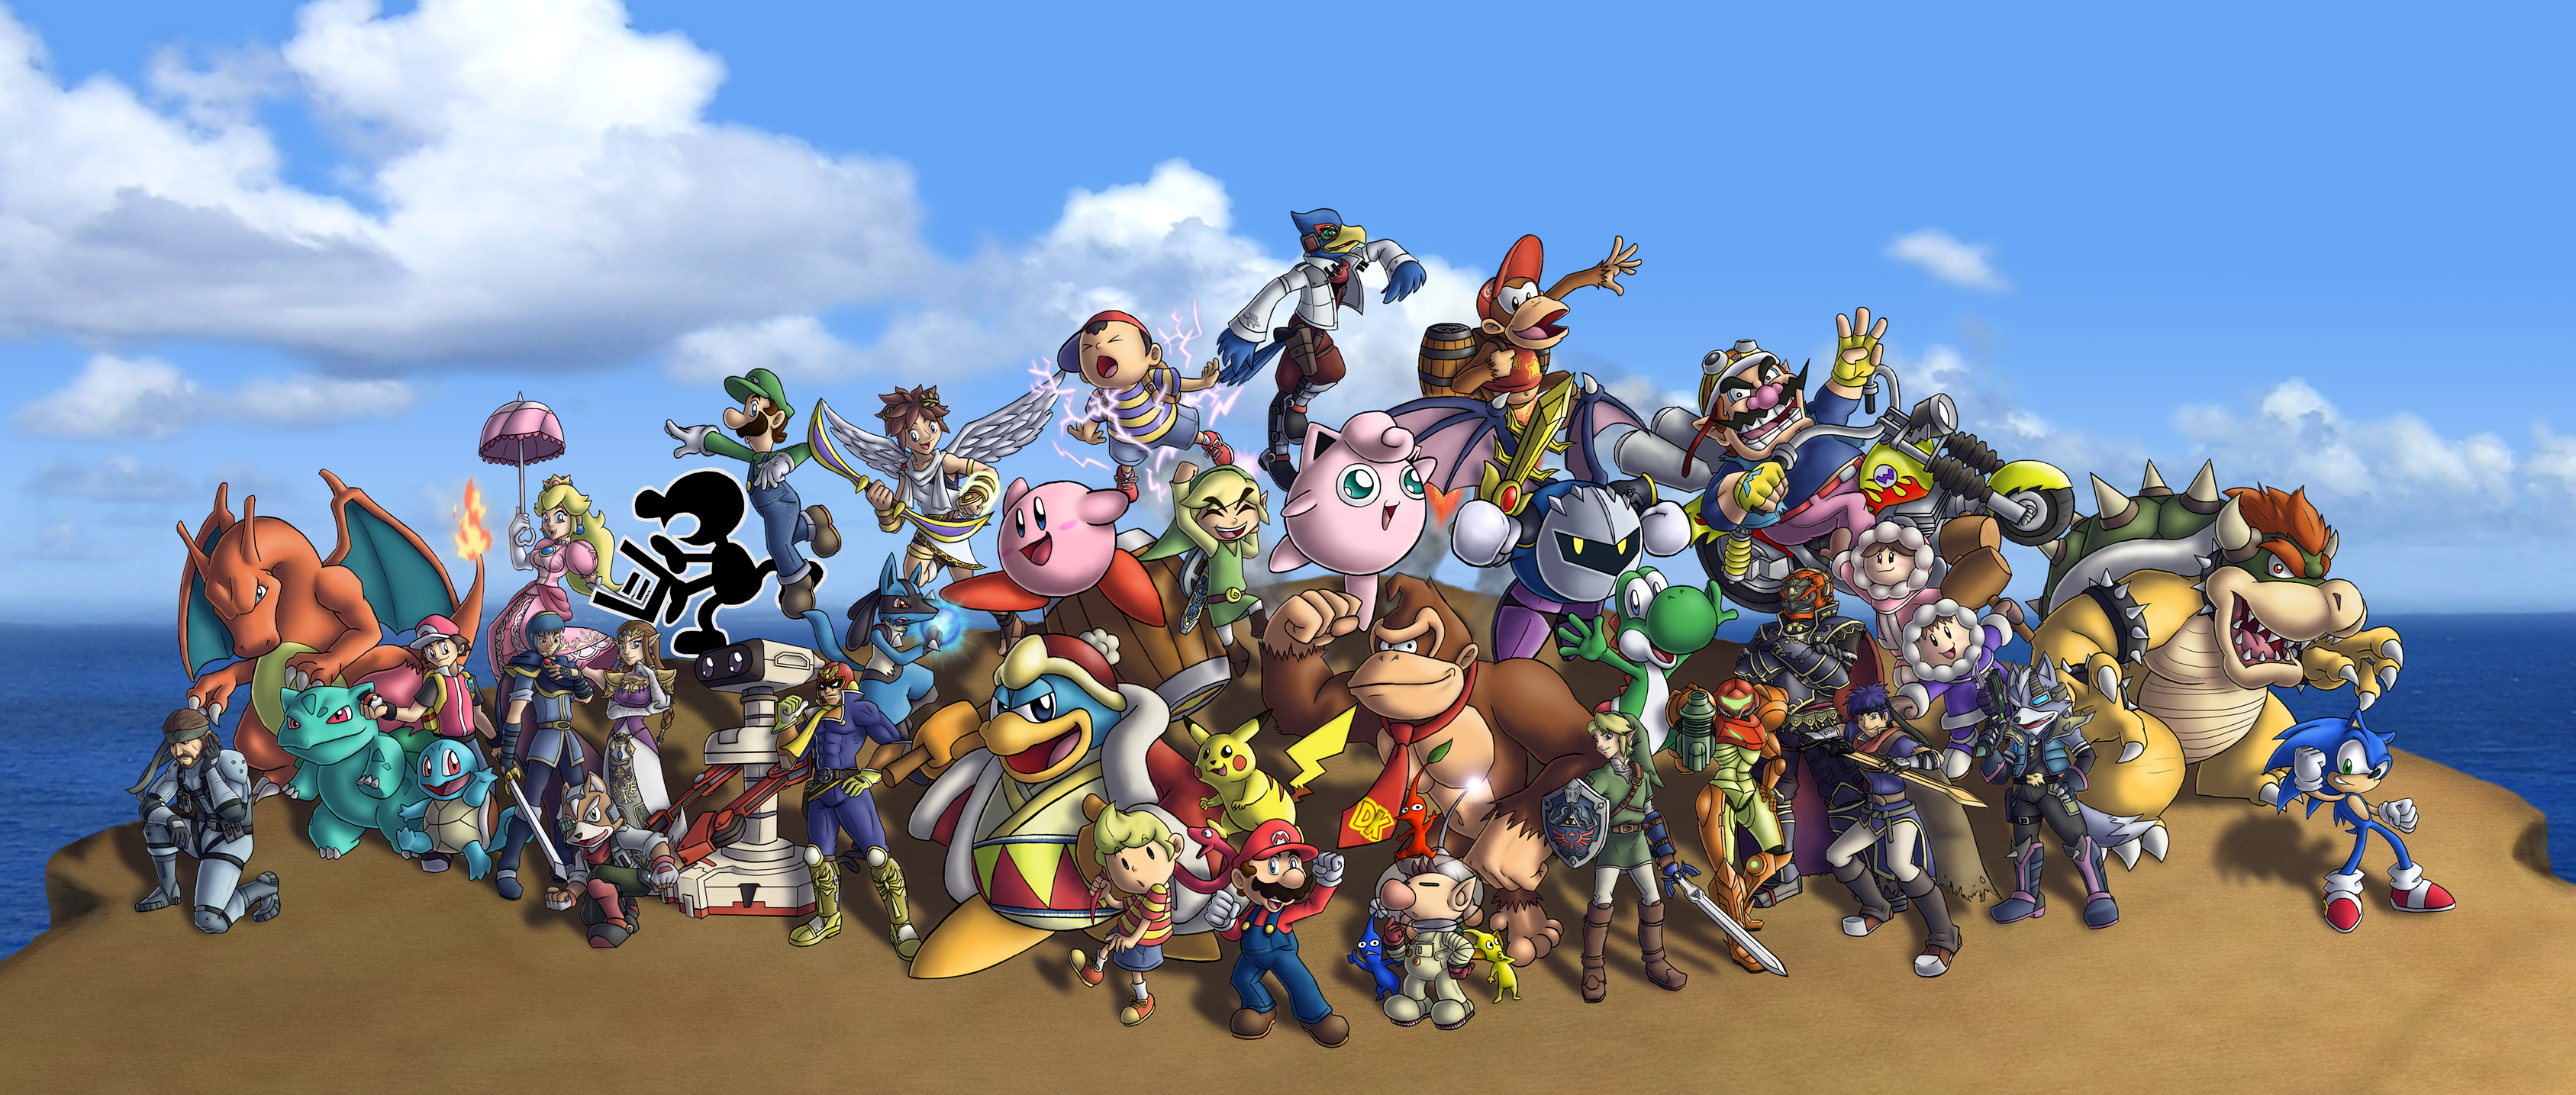 Super Smash Bros. Brawl by ChetRippo